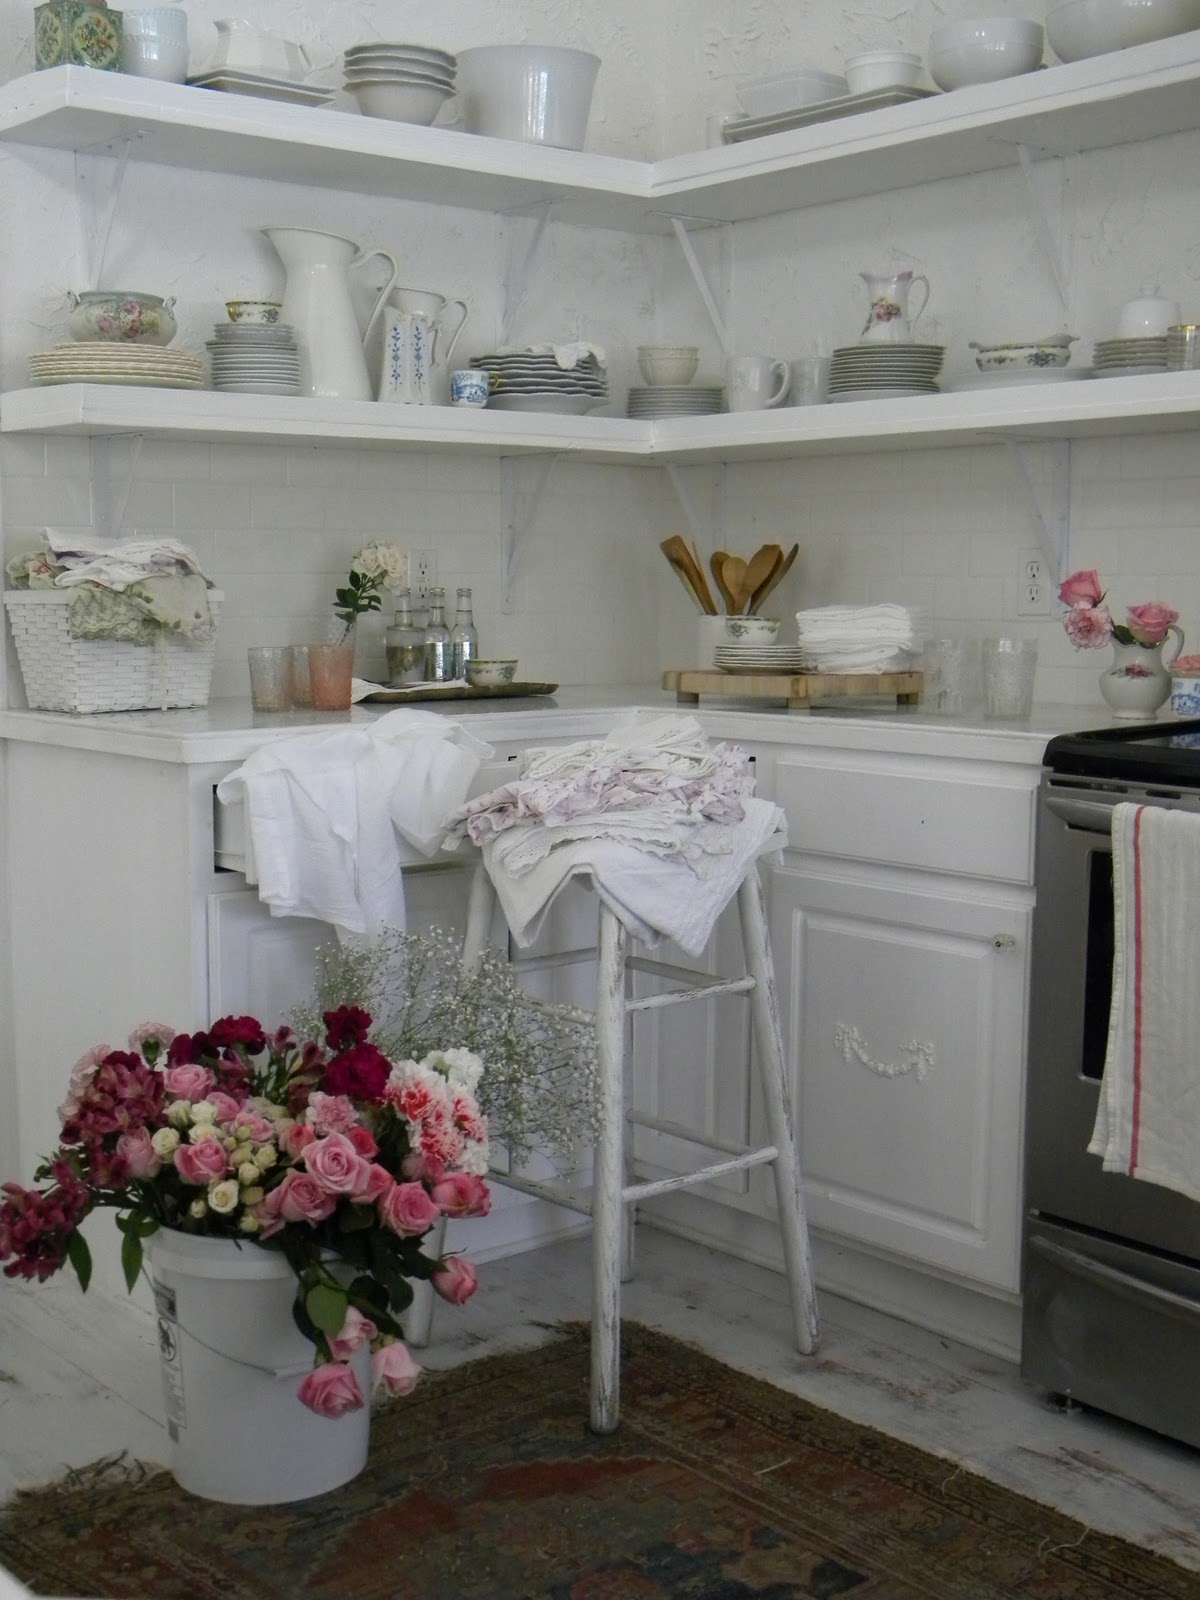 Simply me my kitchen photos - Porte shabby chic ...